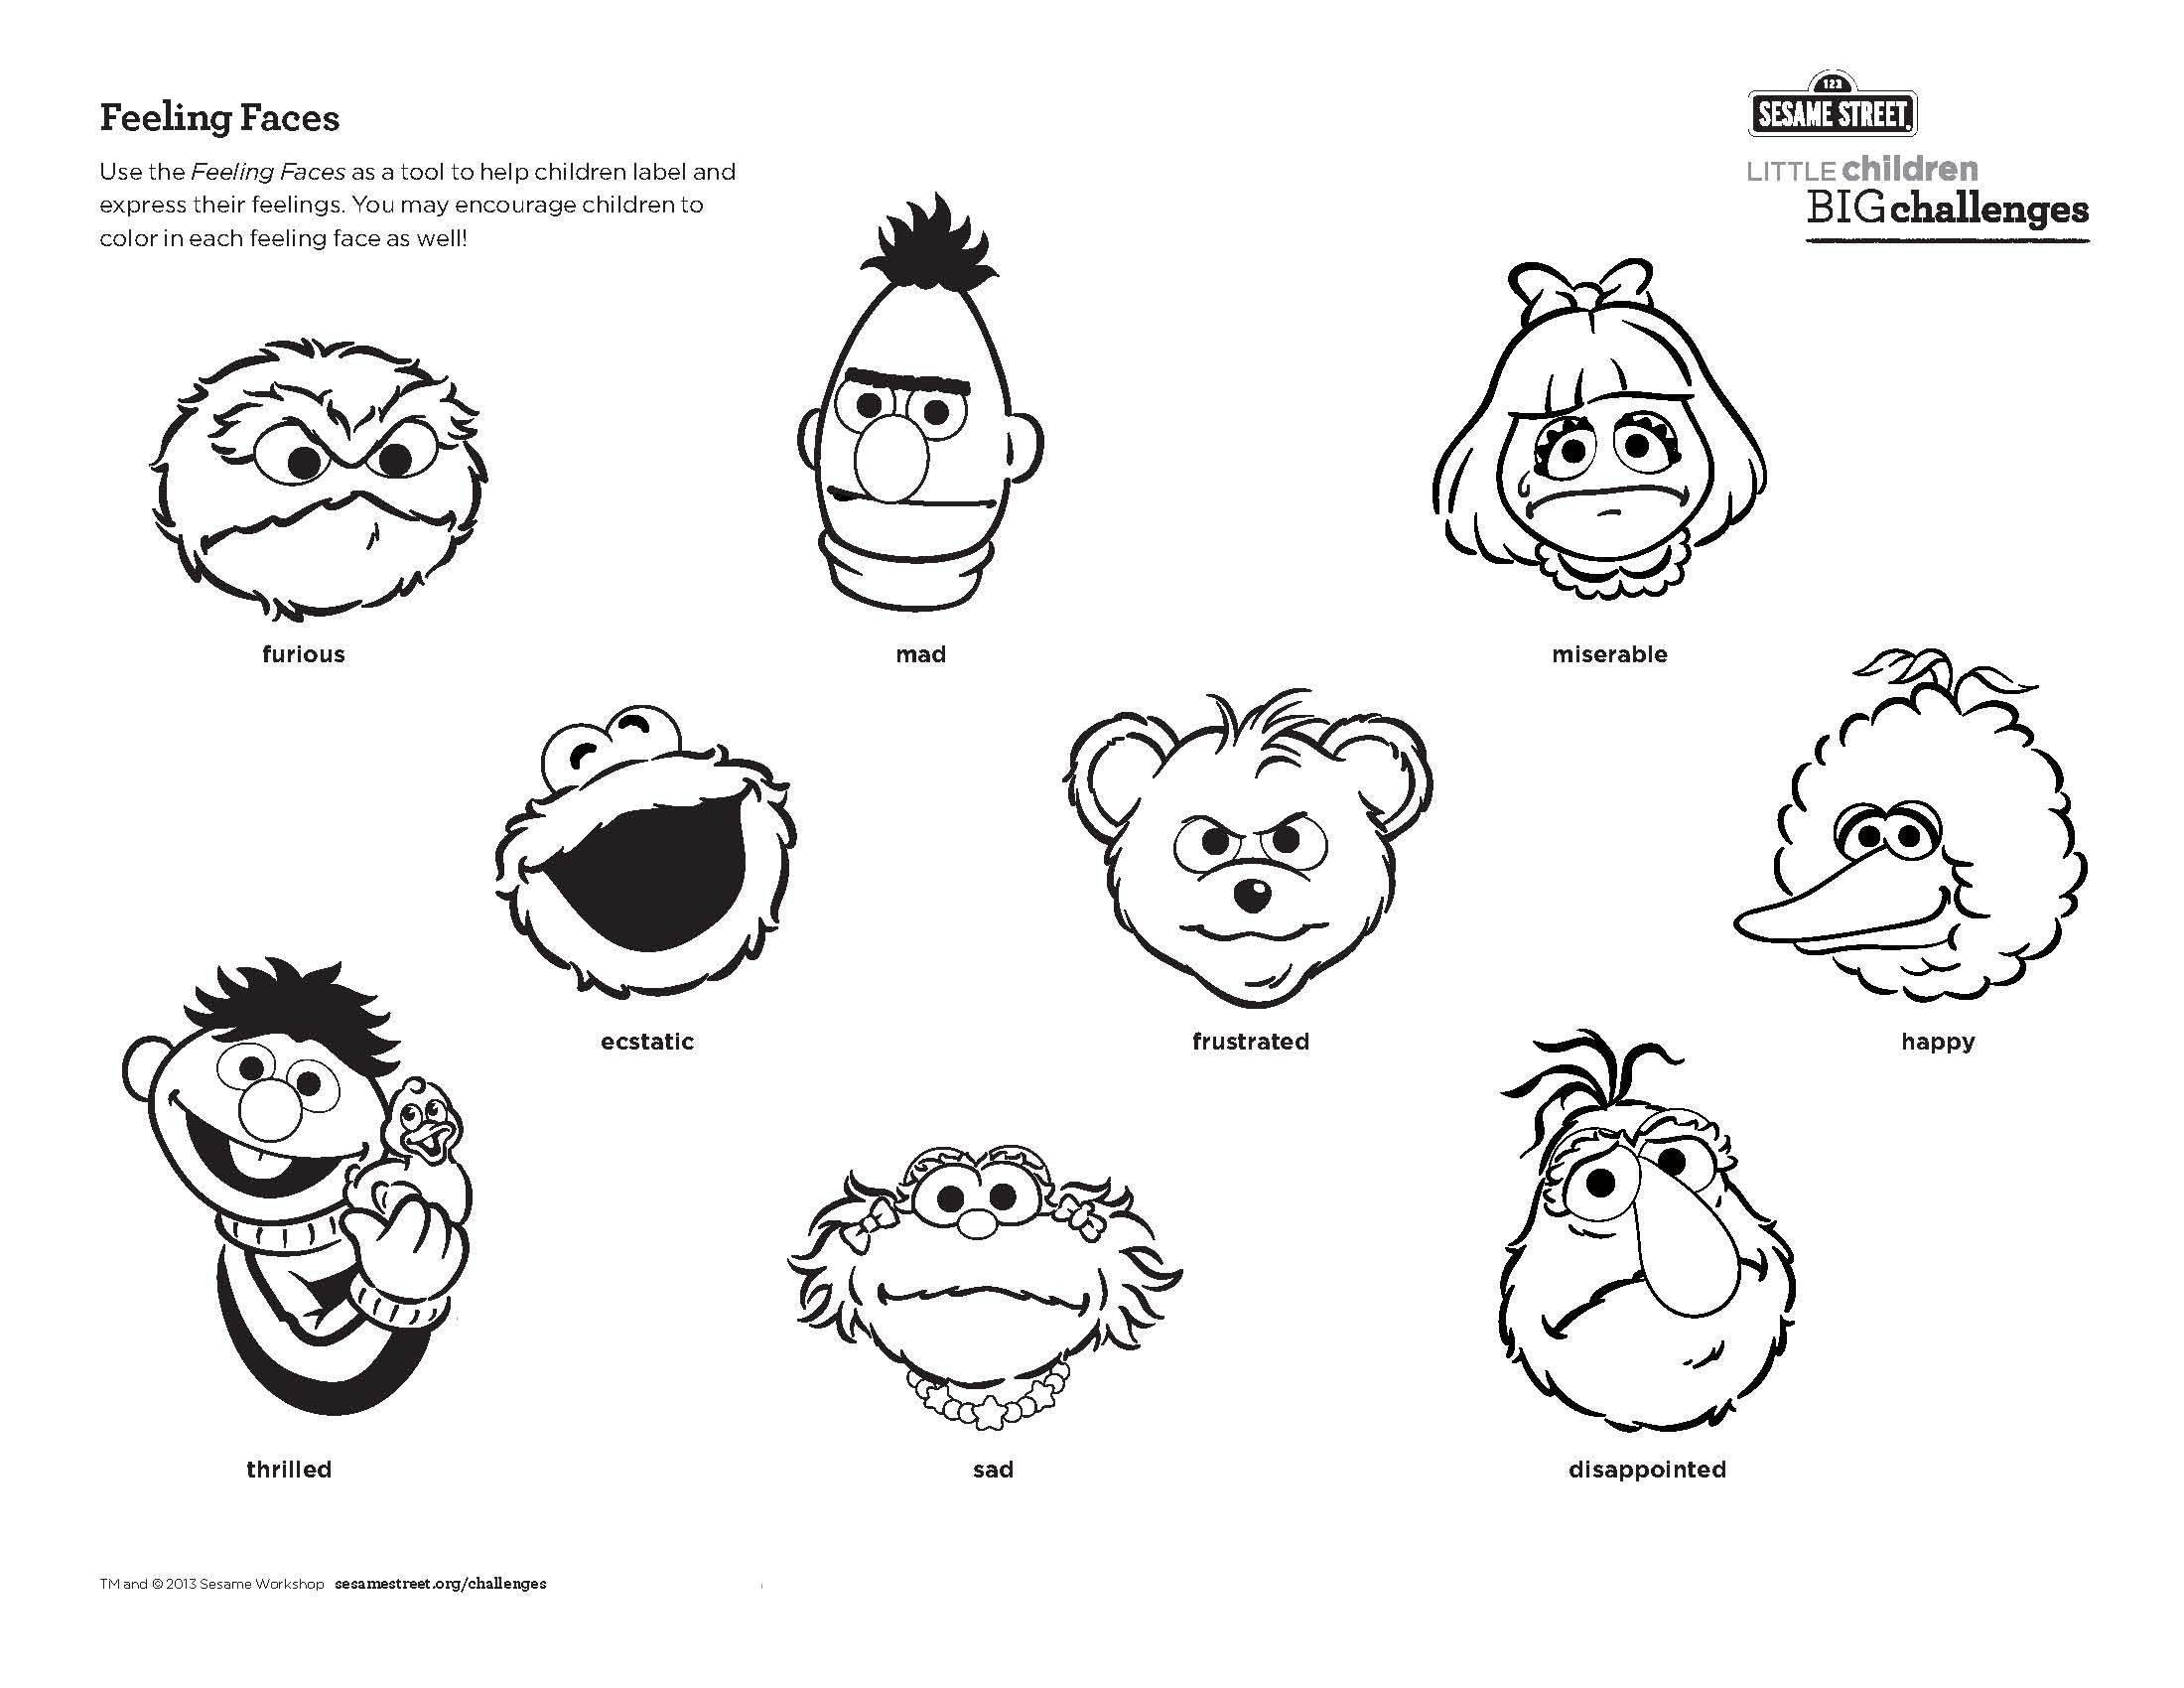 Use This Feeling Faces Printable As A Tool To Help Children Label And Express Their Feelings